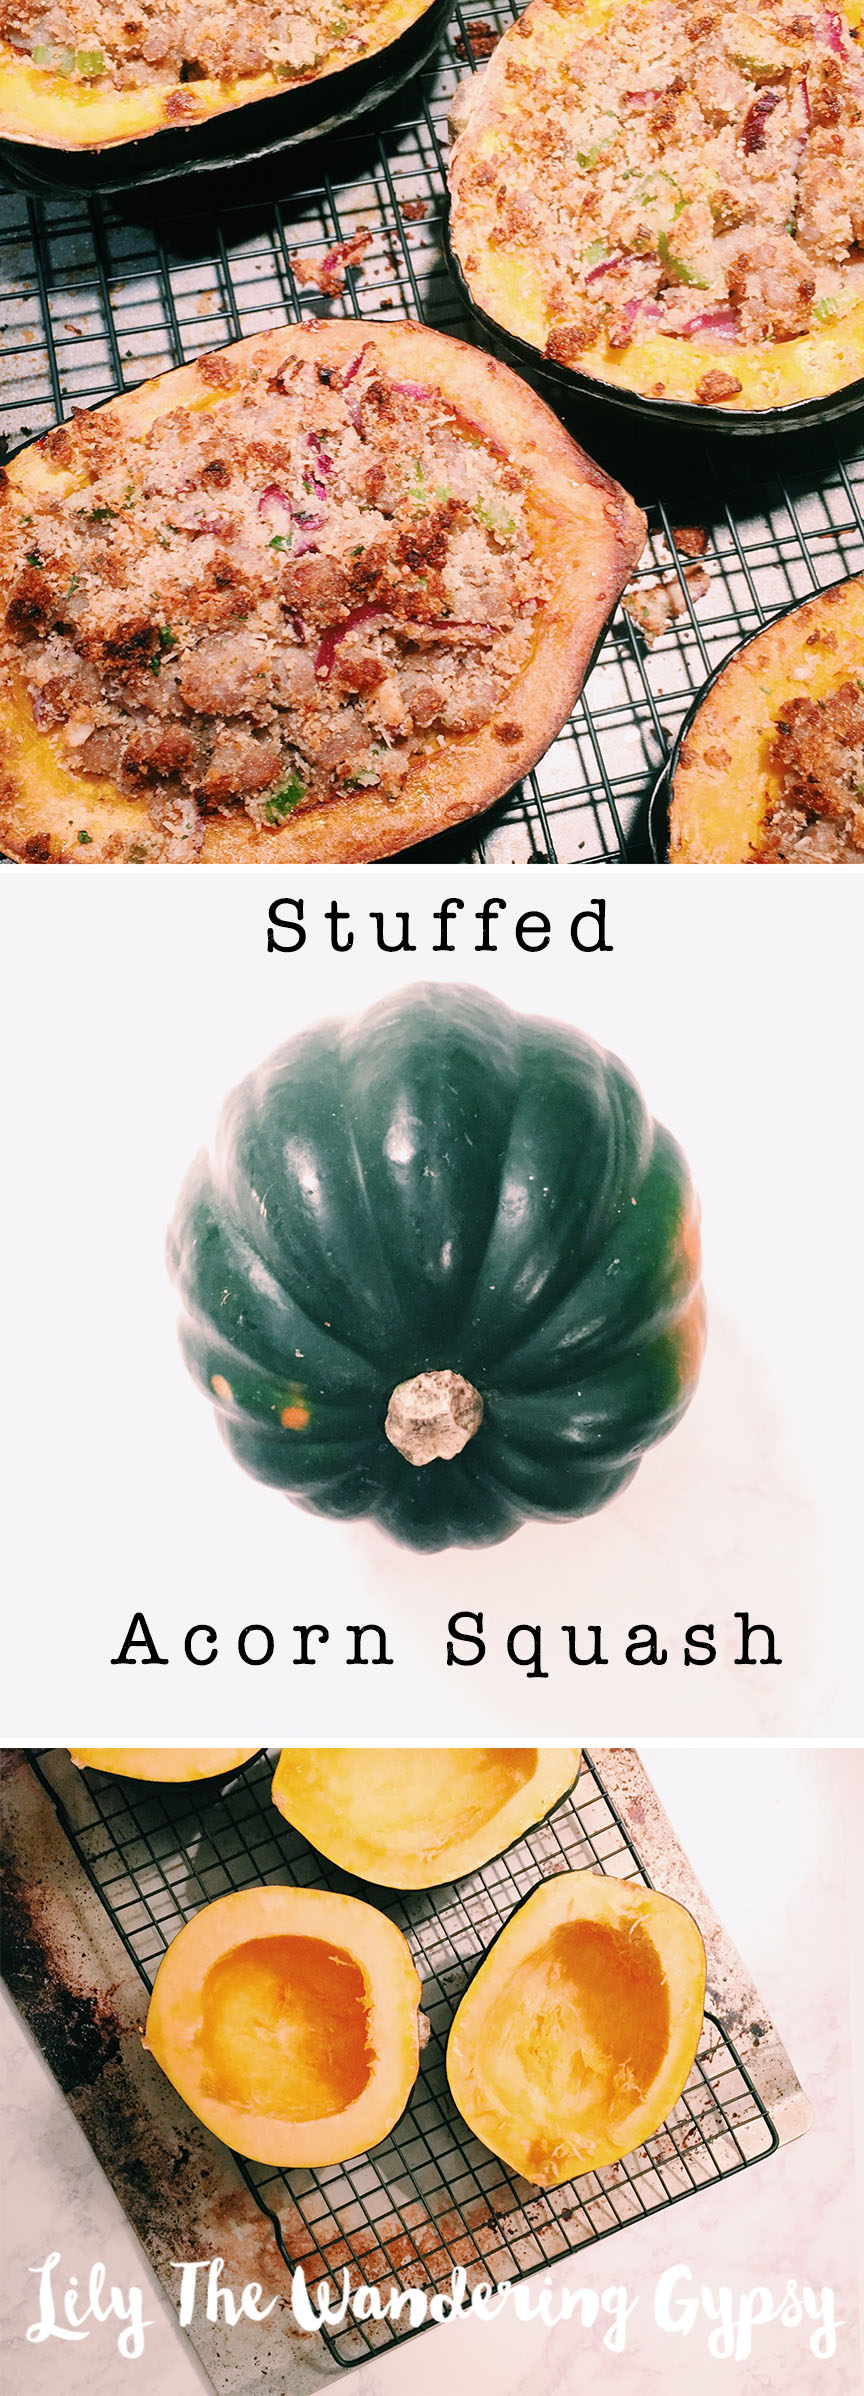 Stuffed Acorn Squash! YUM!!!